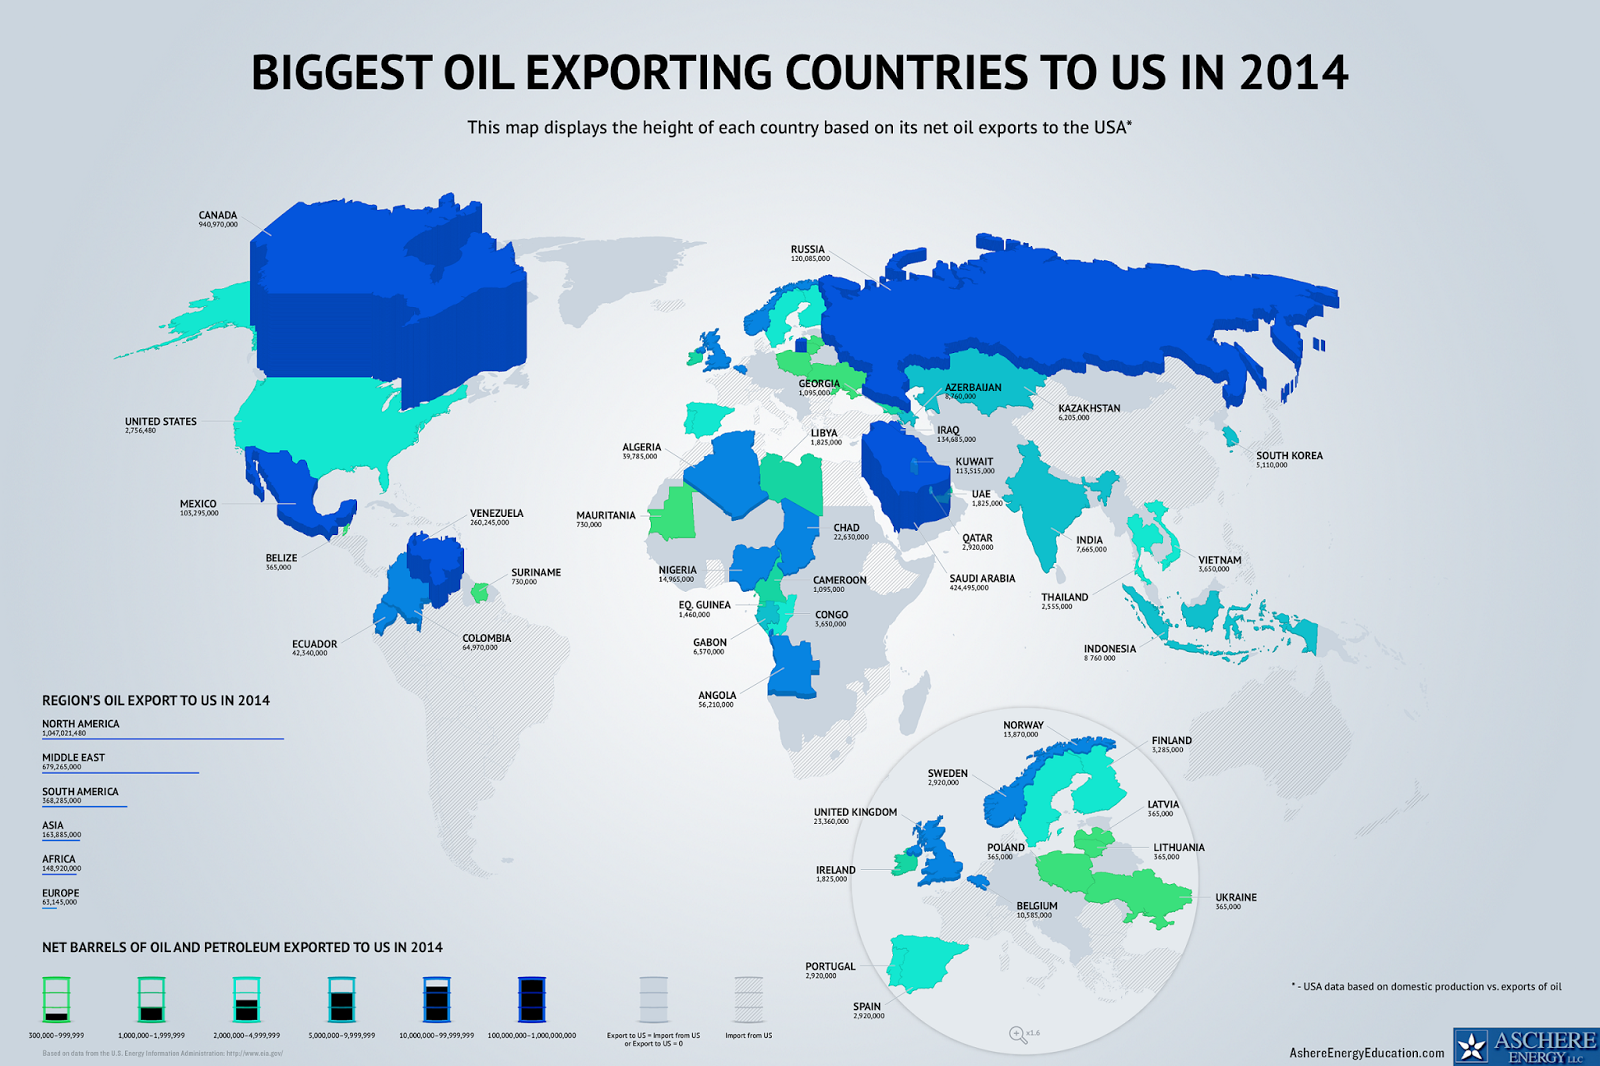 This map displays the height of each country based on its net oil exports to the USA